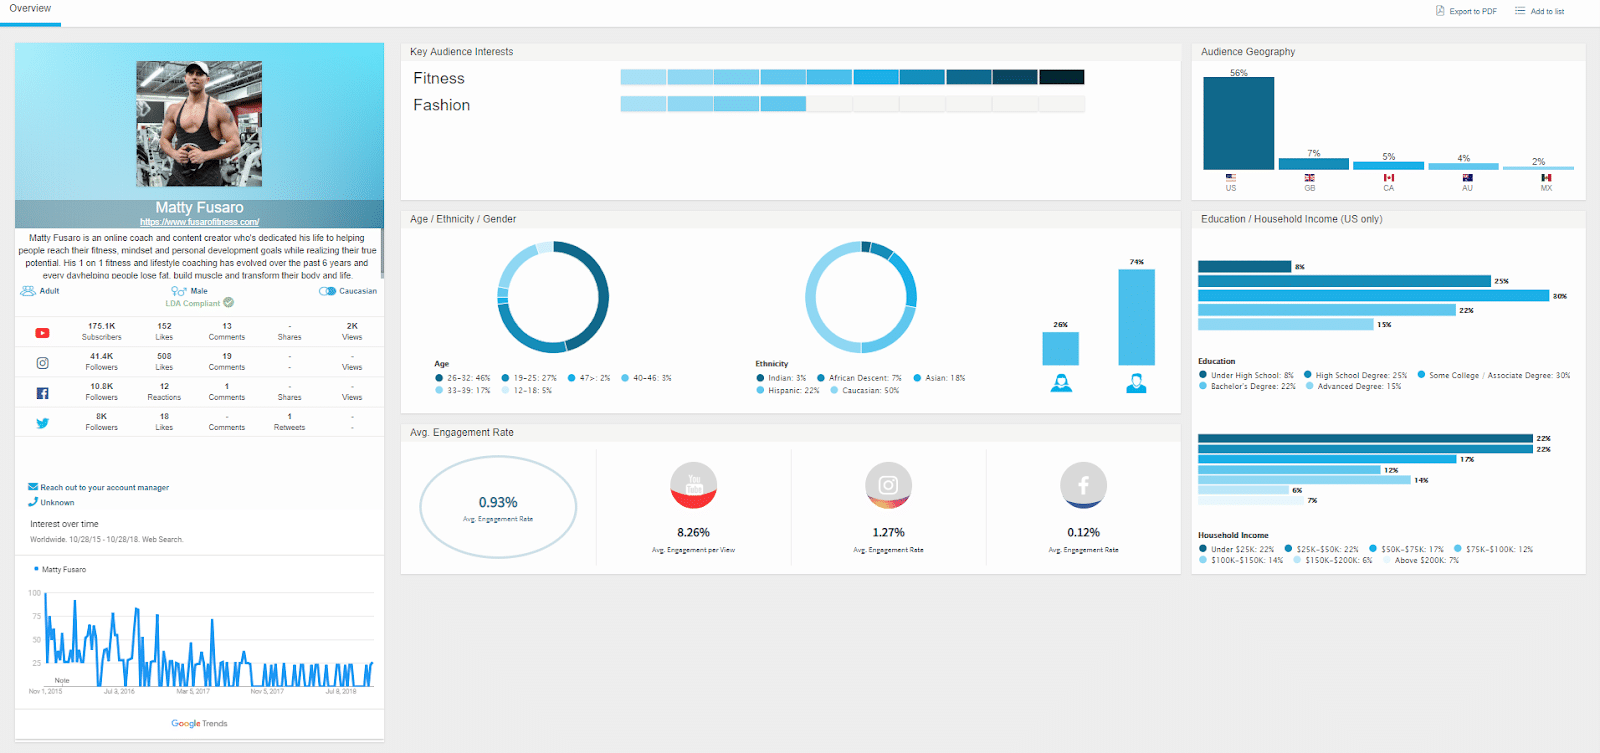 When you find an influencer you're interested in, HYPR offers a detailed profile that includes analytics about the person's audience.